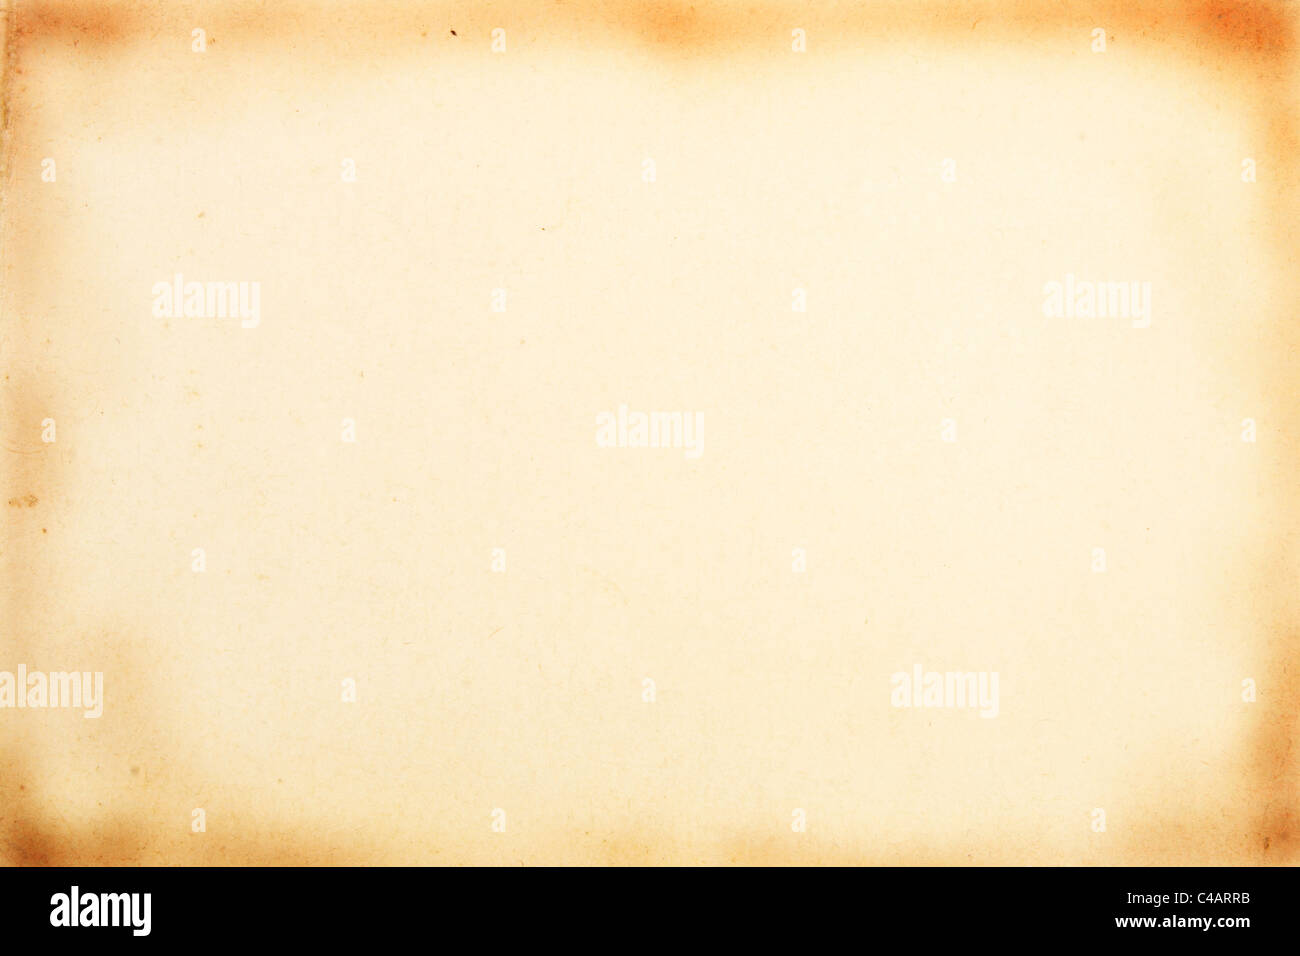 old paper as a background and texture - Stock Image